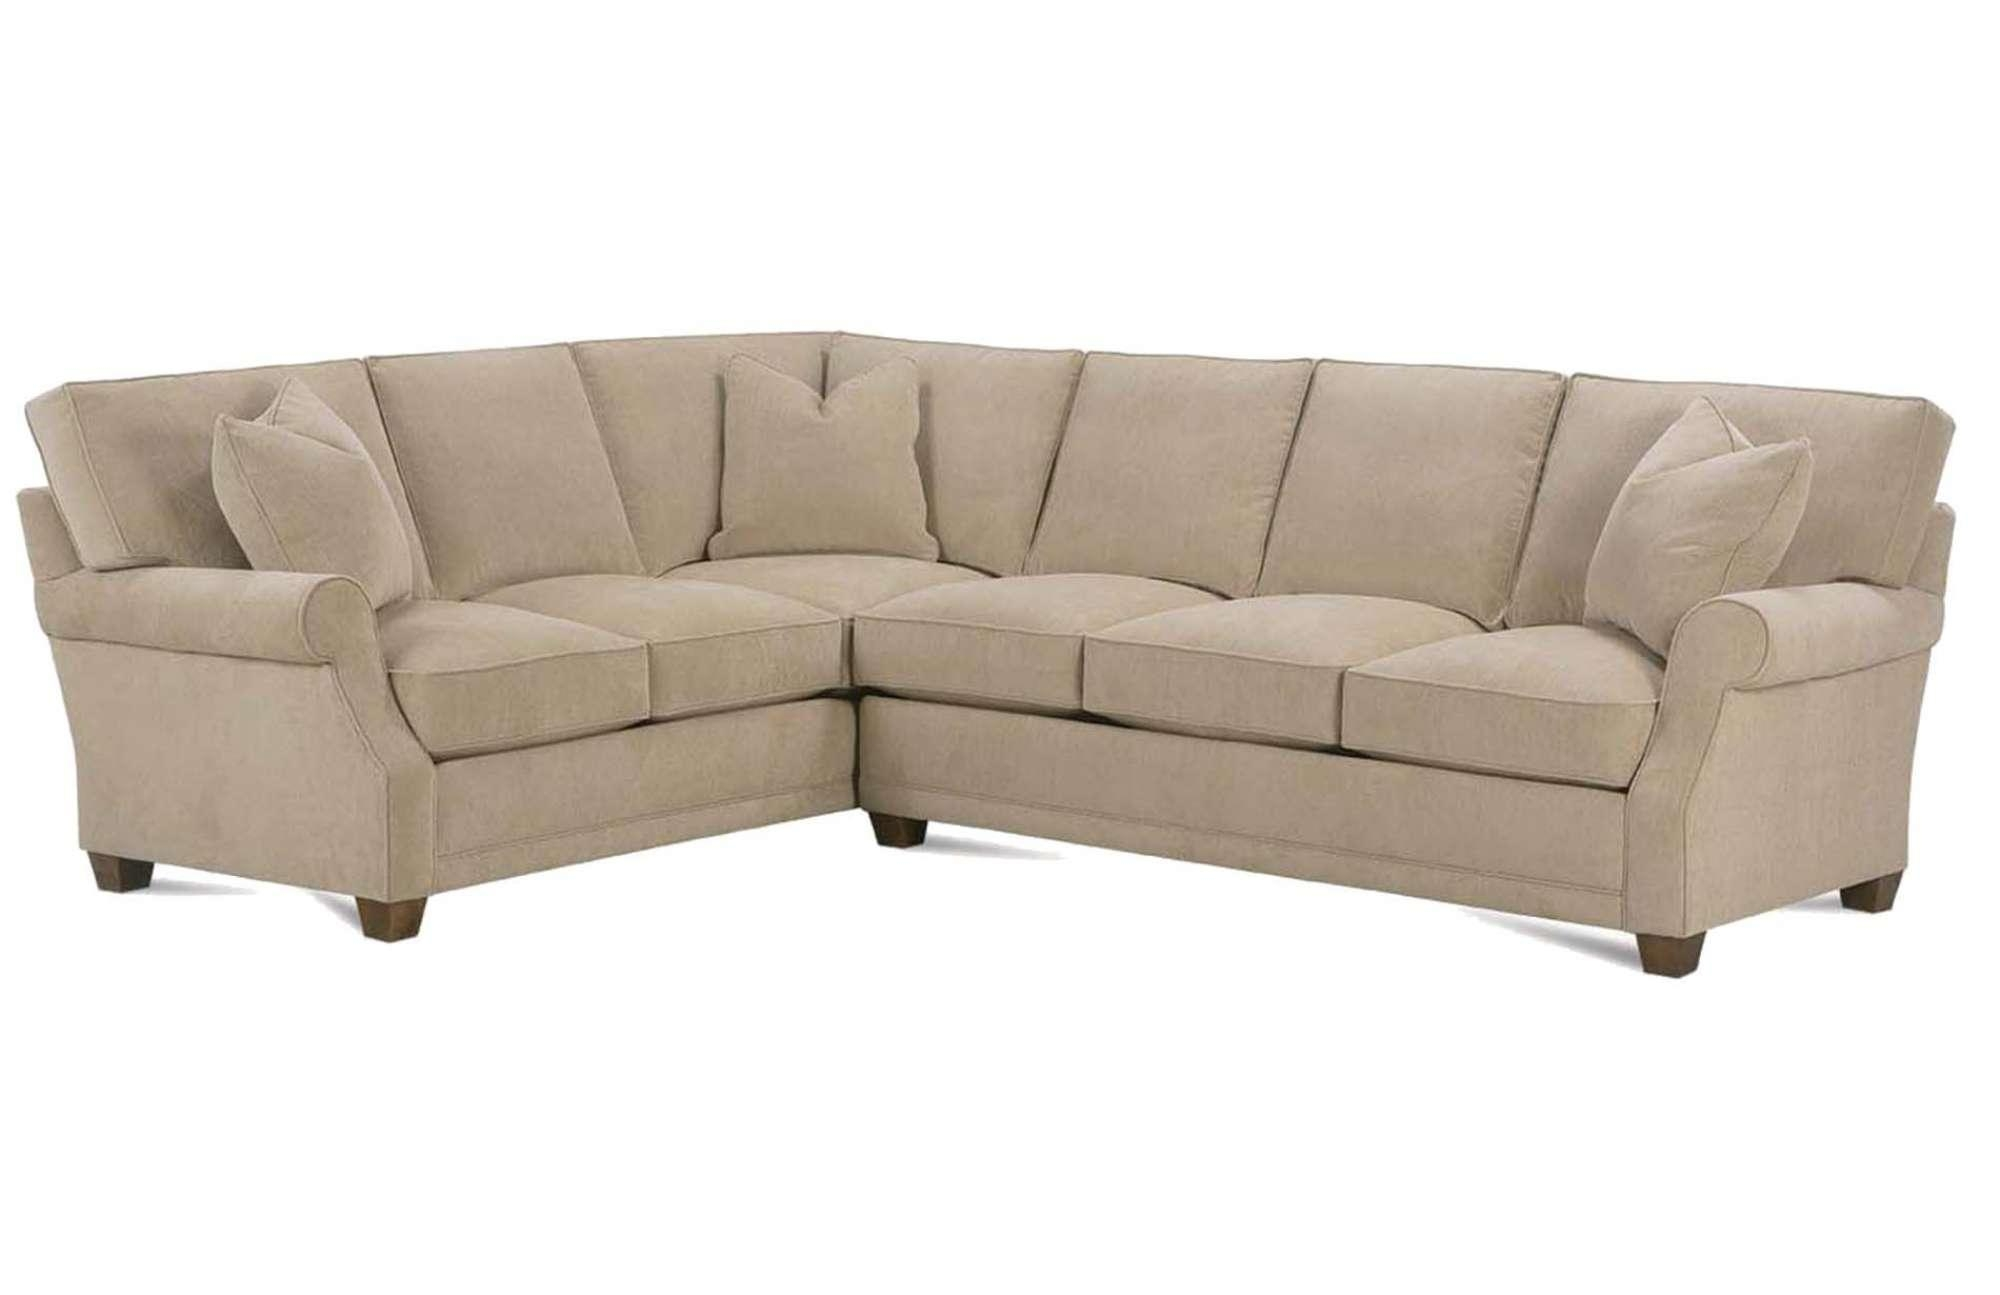 15 photos denver sectional sofa ideas for Sectional sofas denver